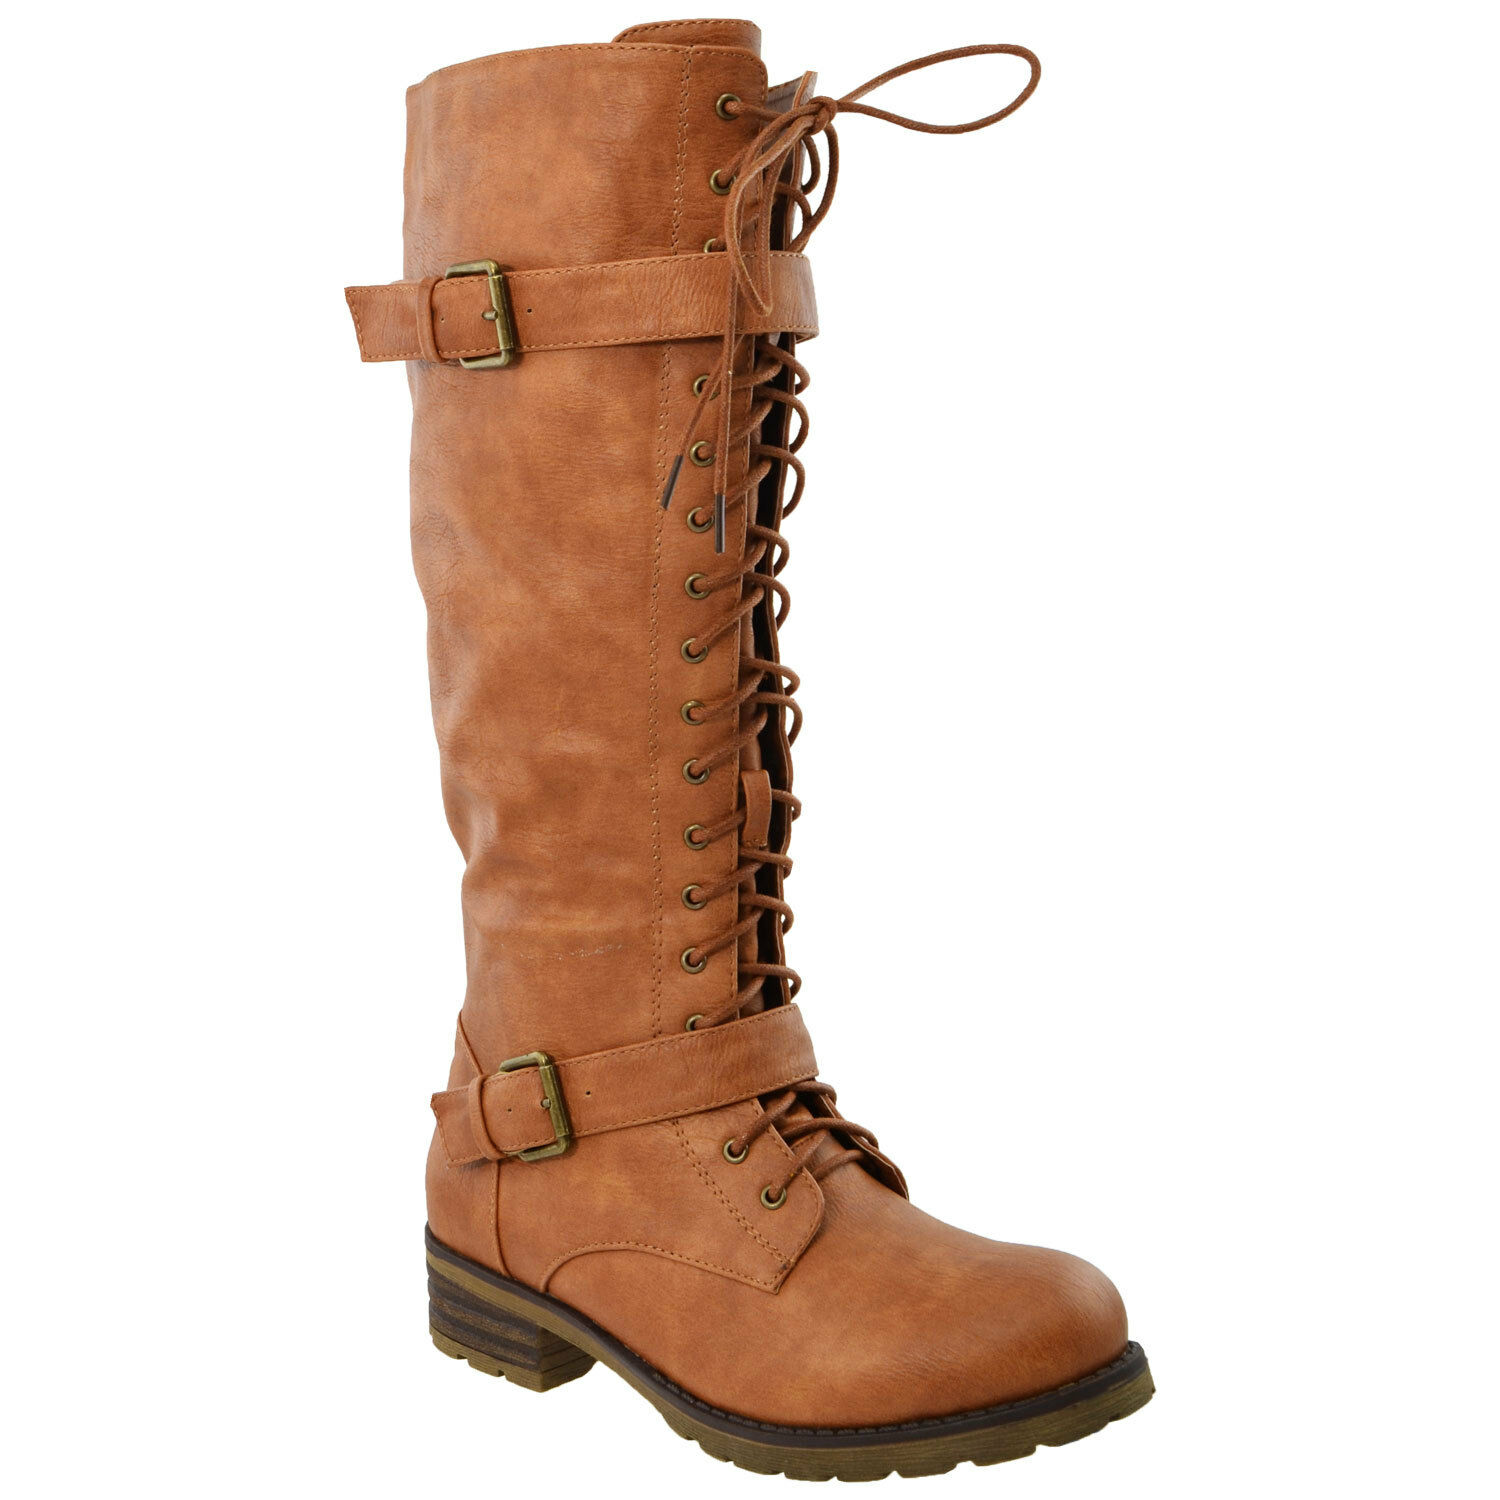 Womens Knee High Boots Lace Up Combat Leather Buckle Straps shoes Tan